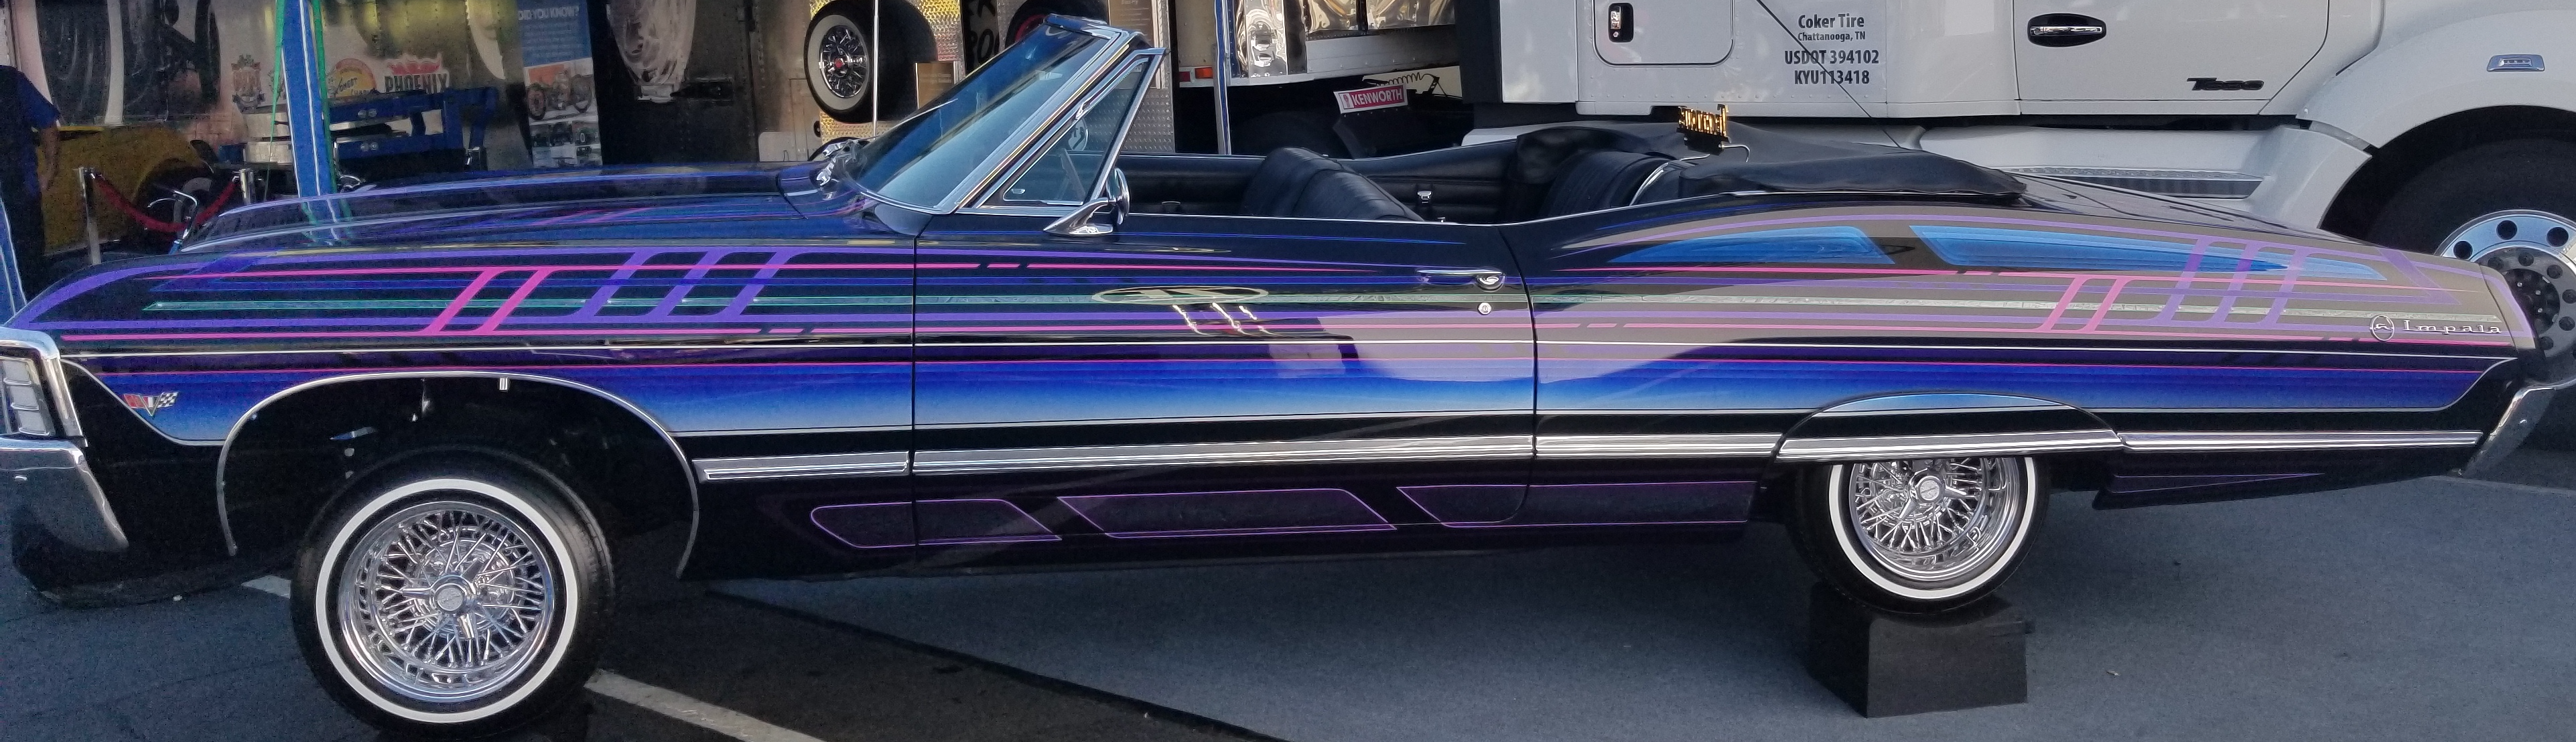 A Chevrolet Impala lowrider, parked outside Corker Tire's booth